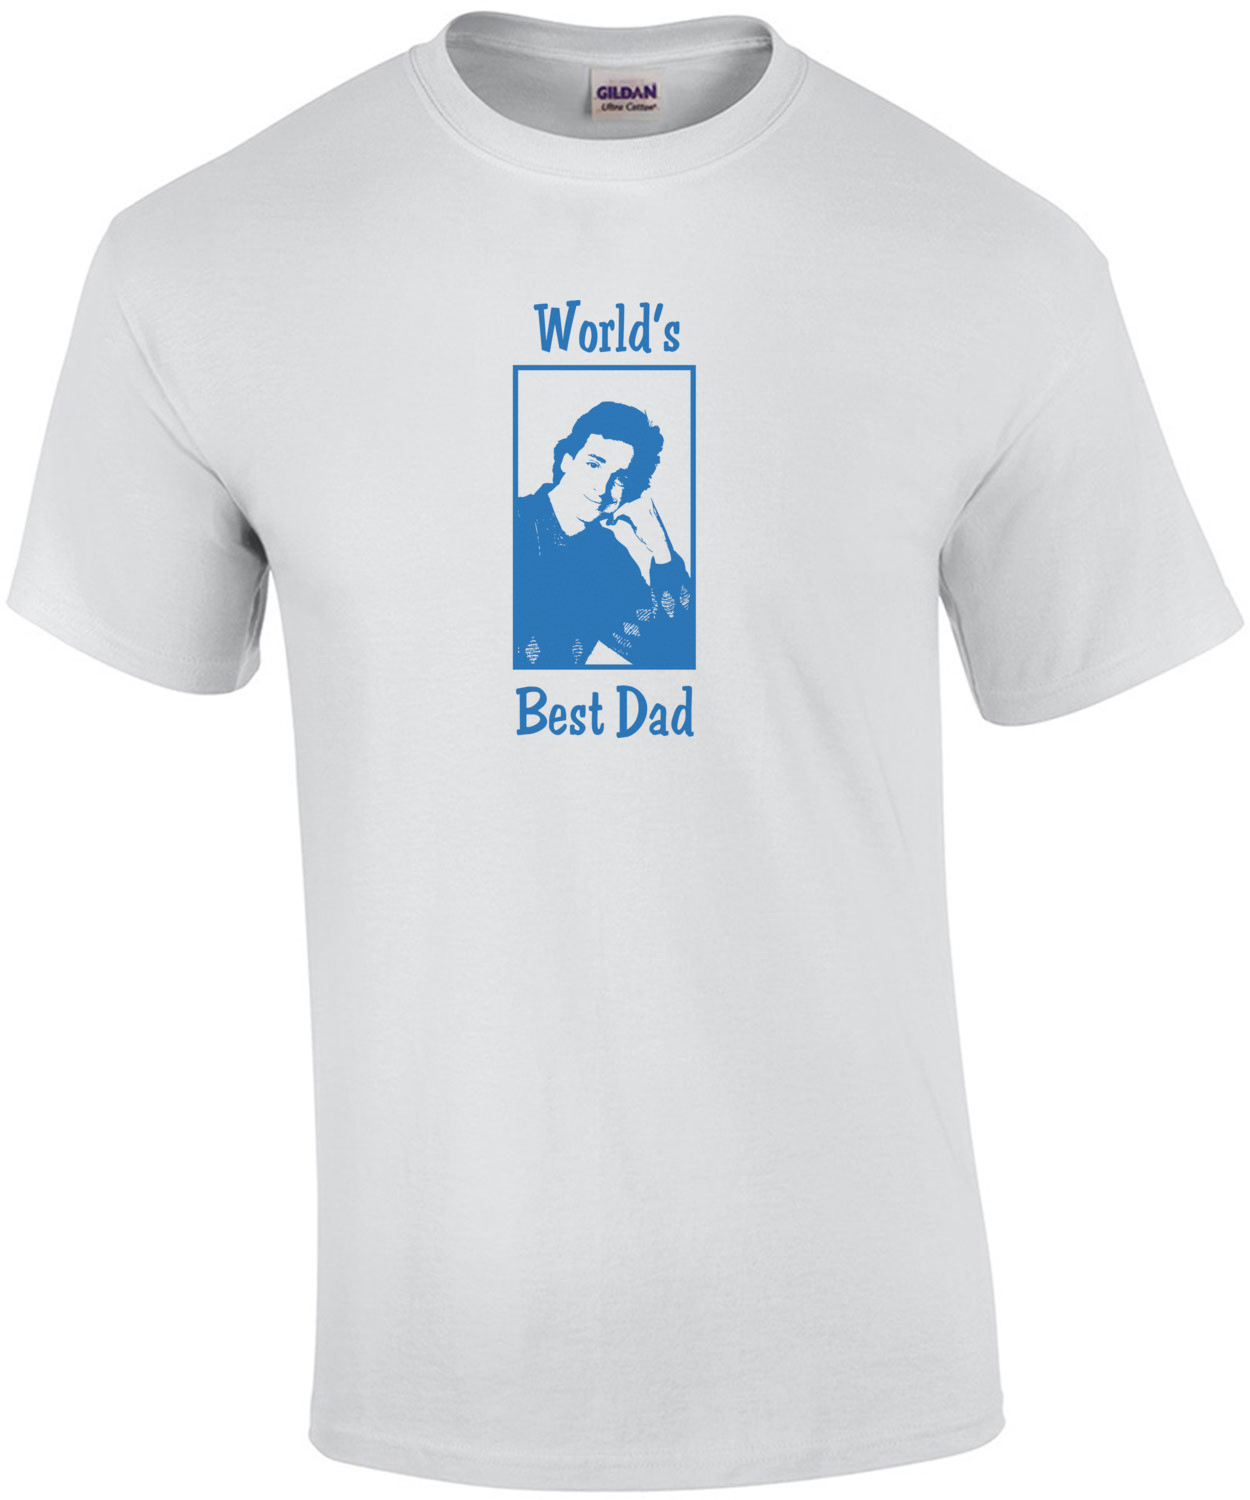 Best Dad Danny Tanner T-shirt